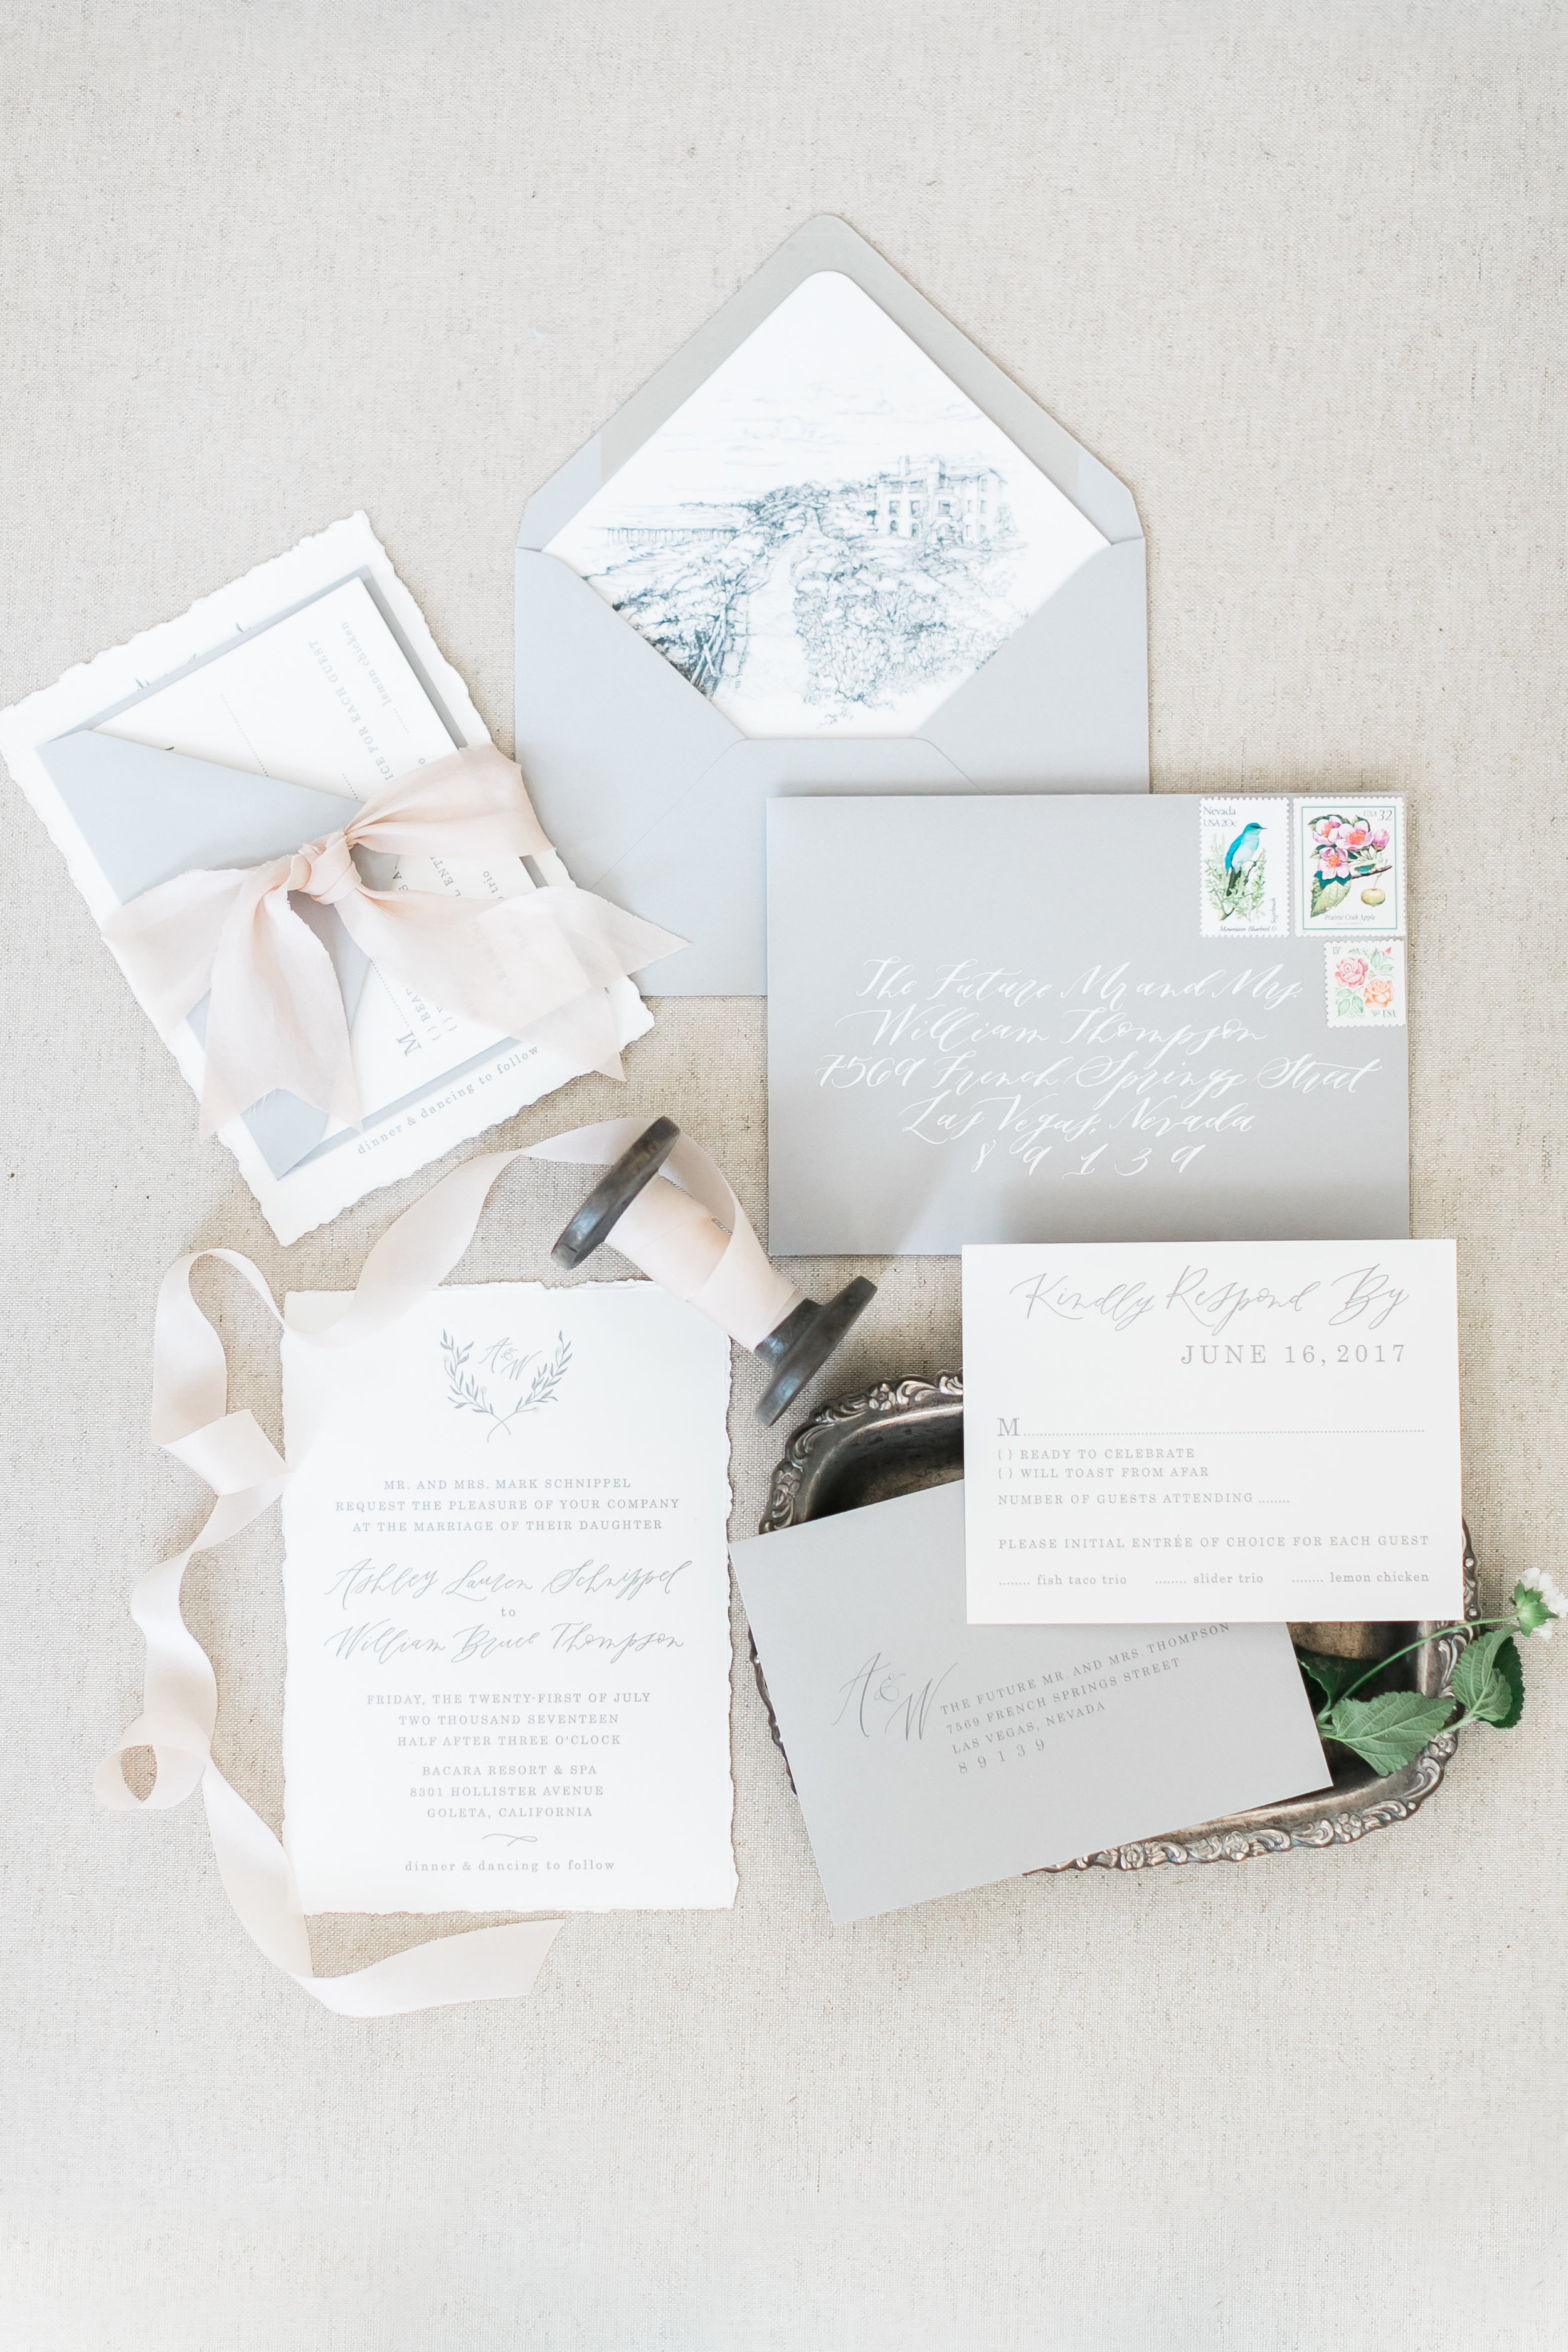 Grey and ivory invitations with custom liner.     Destination Wedding Planner  ANDREA EPPOLITO EVENTS  · Images by  J.ANNE P  HOTOOGRAPHY  · Video  HOO FILMS  · Venue Ritz Carlton Bacara Santa Barbara ·Gown MONIQUE LHULLIER ·Bridesmaids Dresses  SHOW ME YOUR MUMU ·Stationery  SHE PAPERIE ·Bride's Shoes  BADGLEY MISCHKA ·Hair and Makeup  TEAM HAIR AND MAKEUP · Floral  BLUE MAGNOLIA ·Linen  LA TAVOLA ·Decor Rentals  TENT MERCHANT ·Calligraphy  EBB ·Lighting  FIVE STAR AV ·Ice Cream Station  MCCONNELL'S ICE CREAM